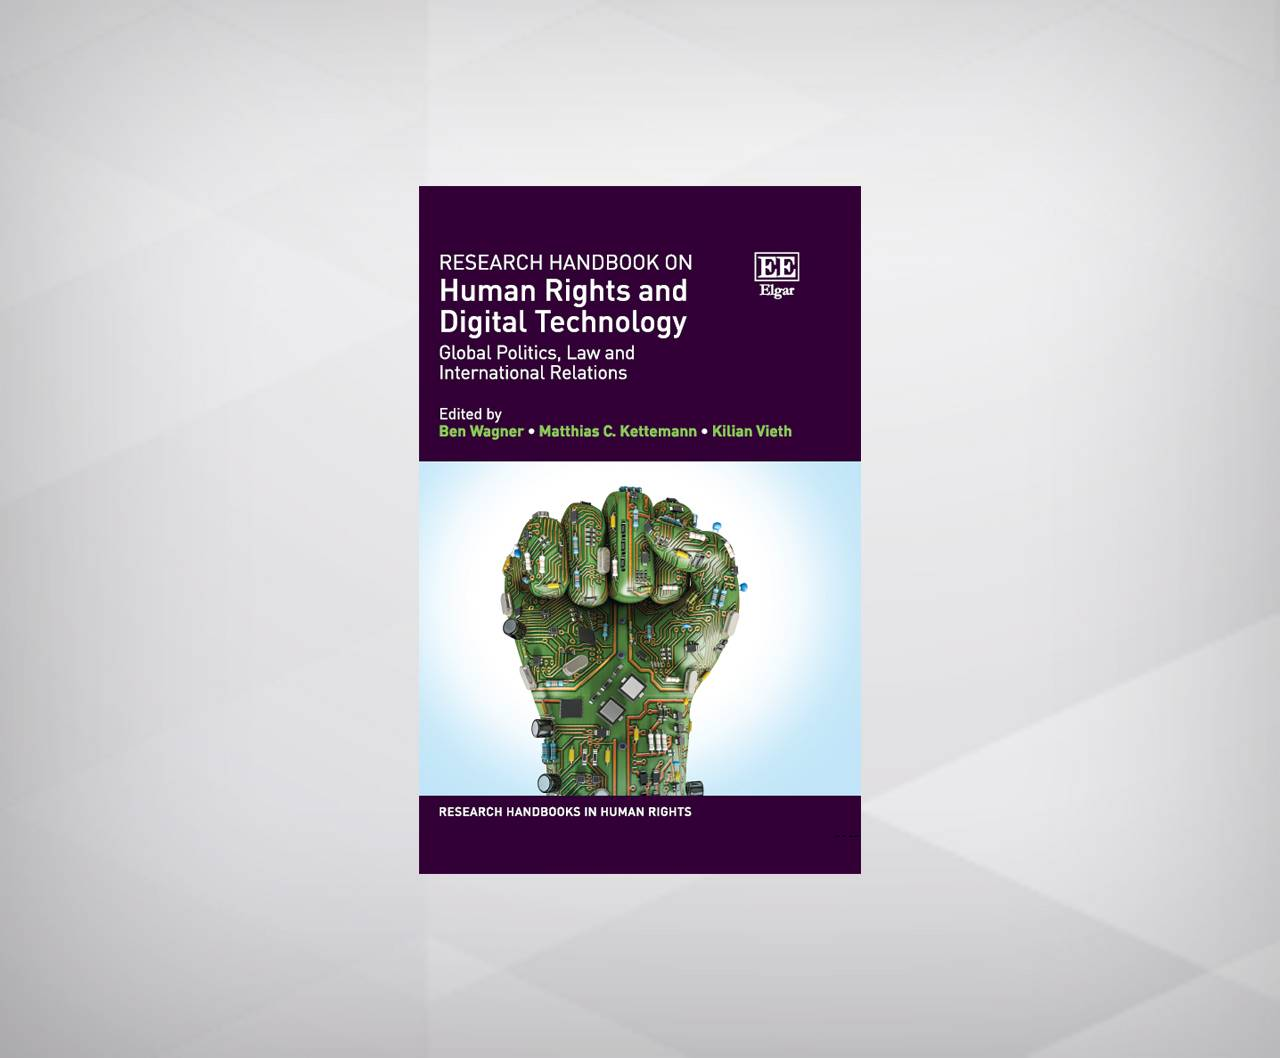 Research Handbook on Human Rights and Digital Technologies: Global Politics, Law and International Relations